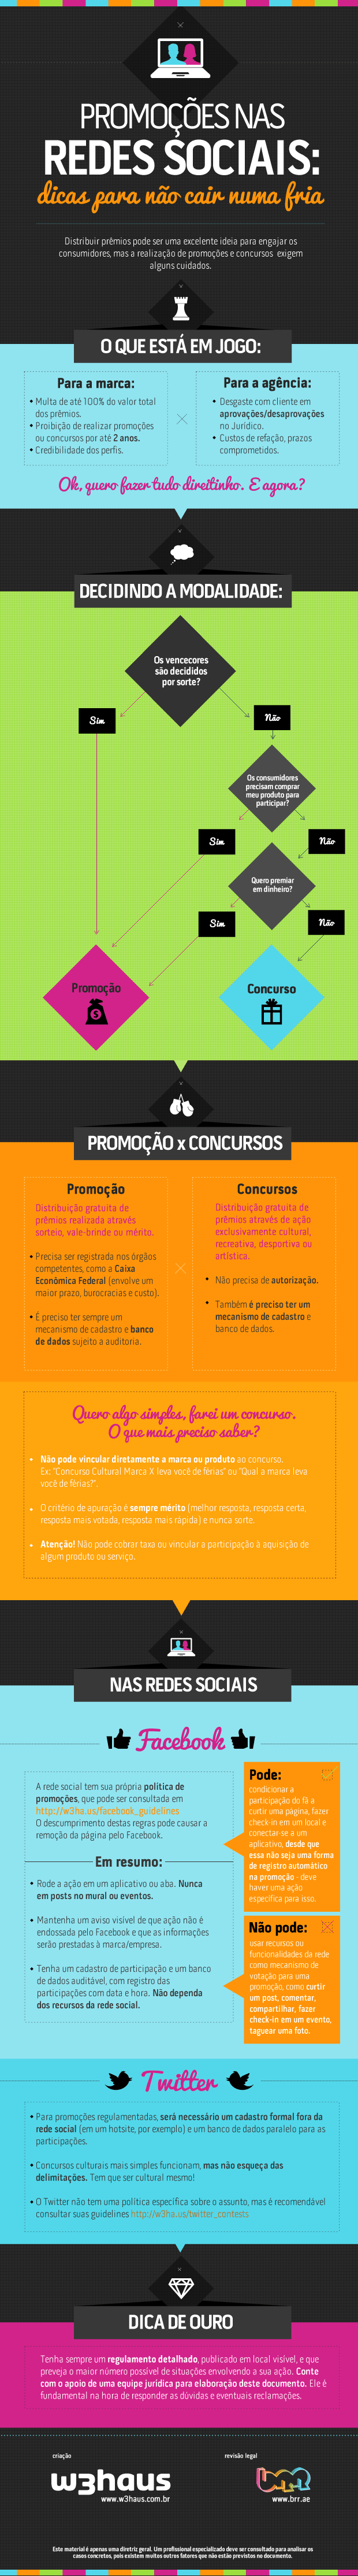 felipetto marketing blog promocoes nas redes sociais